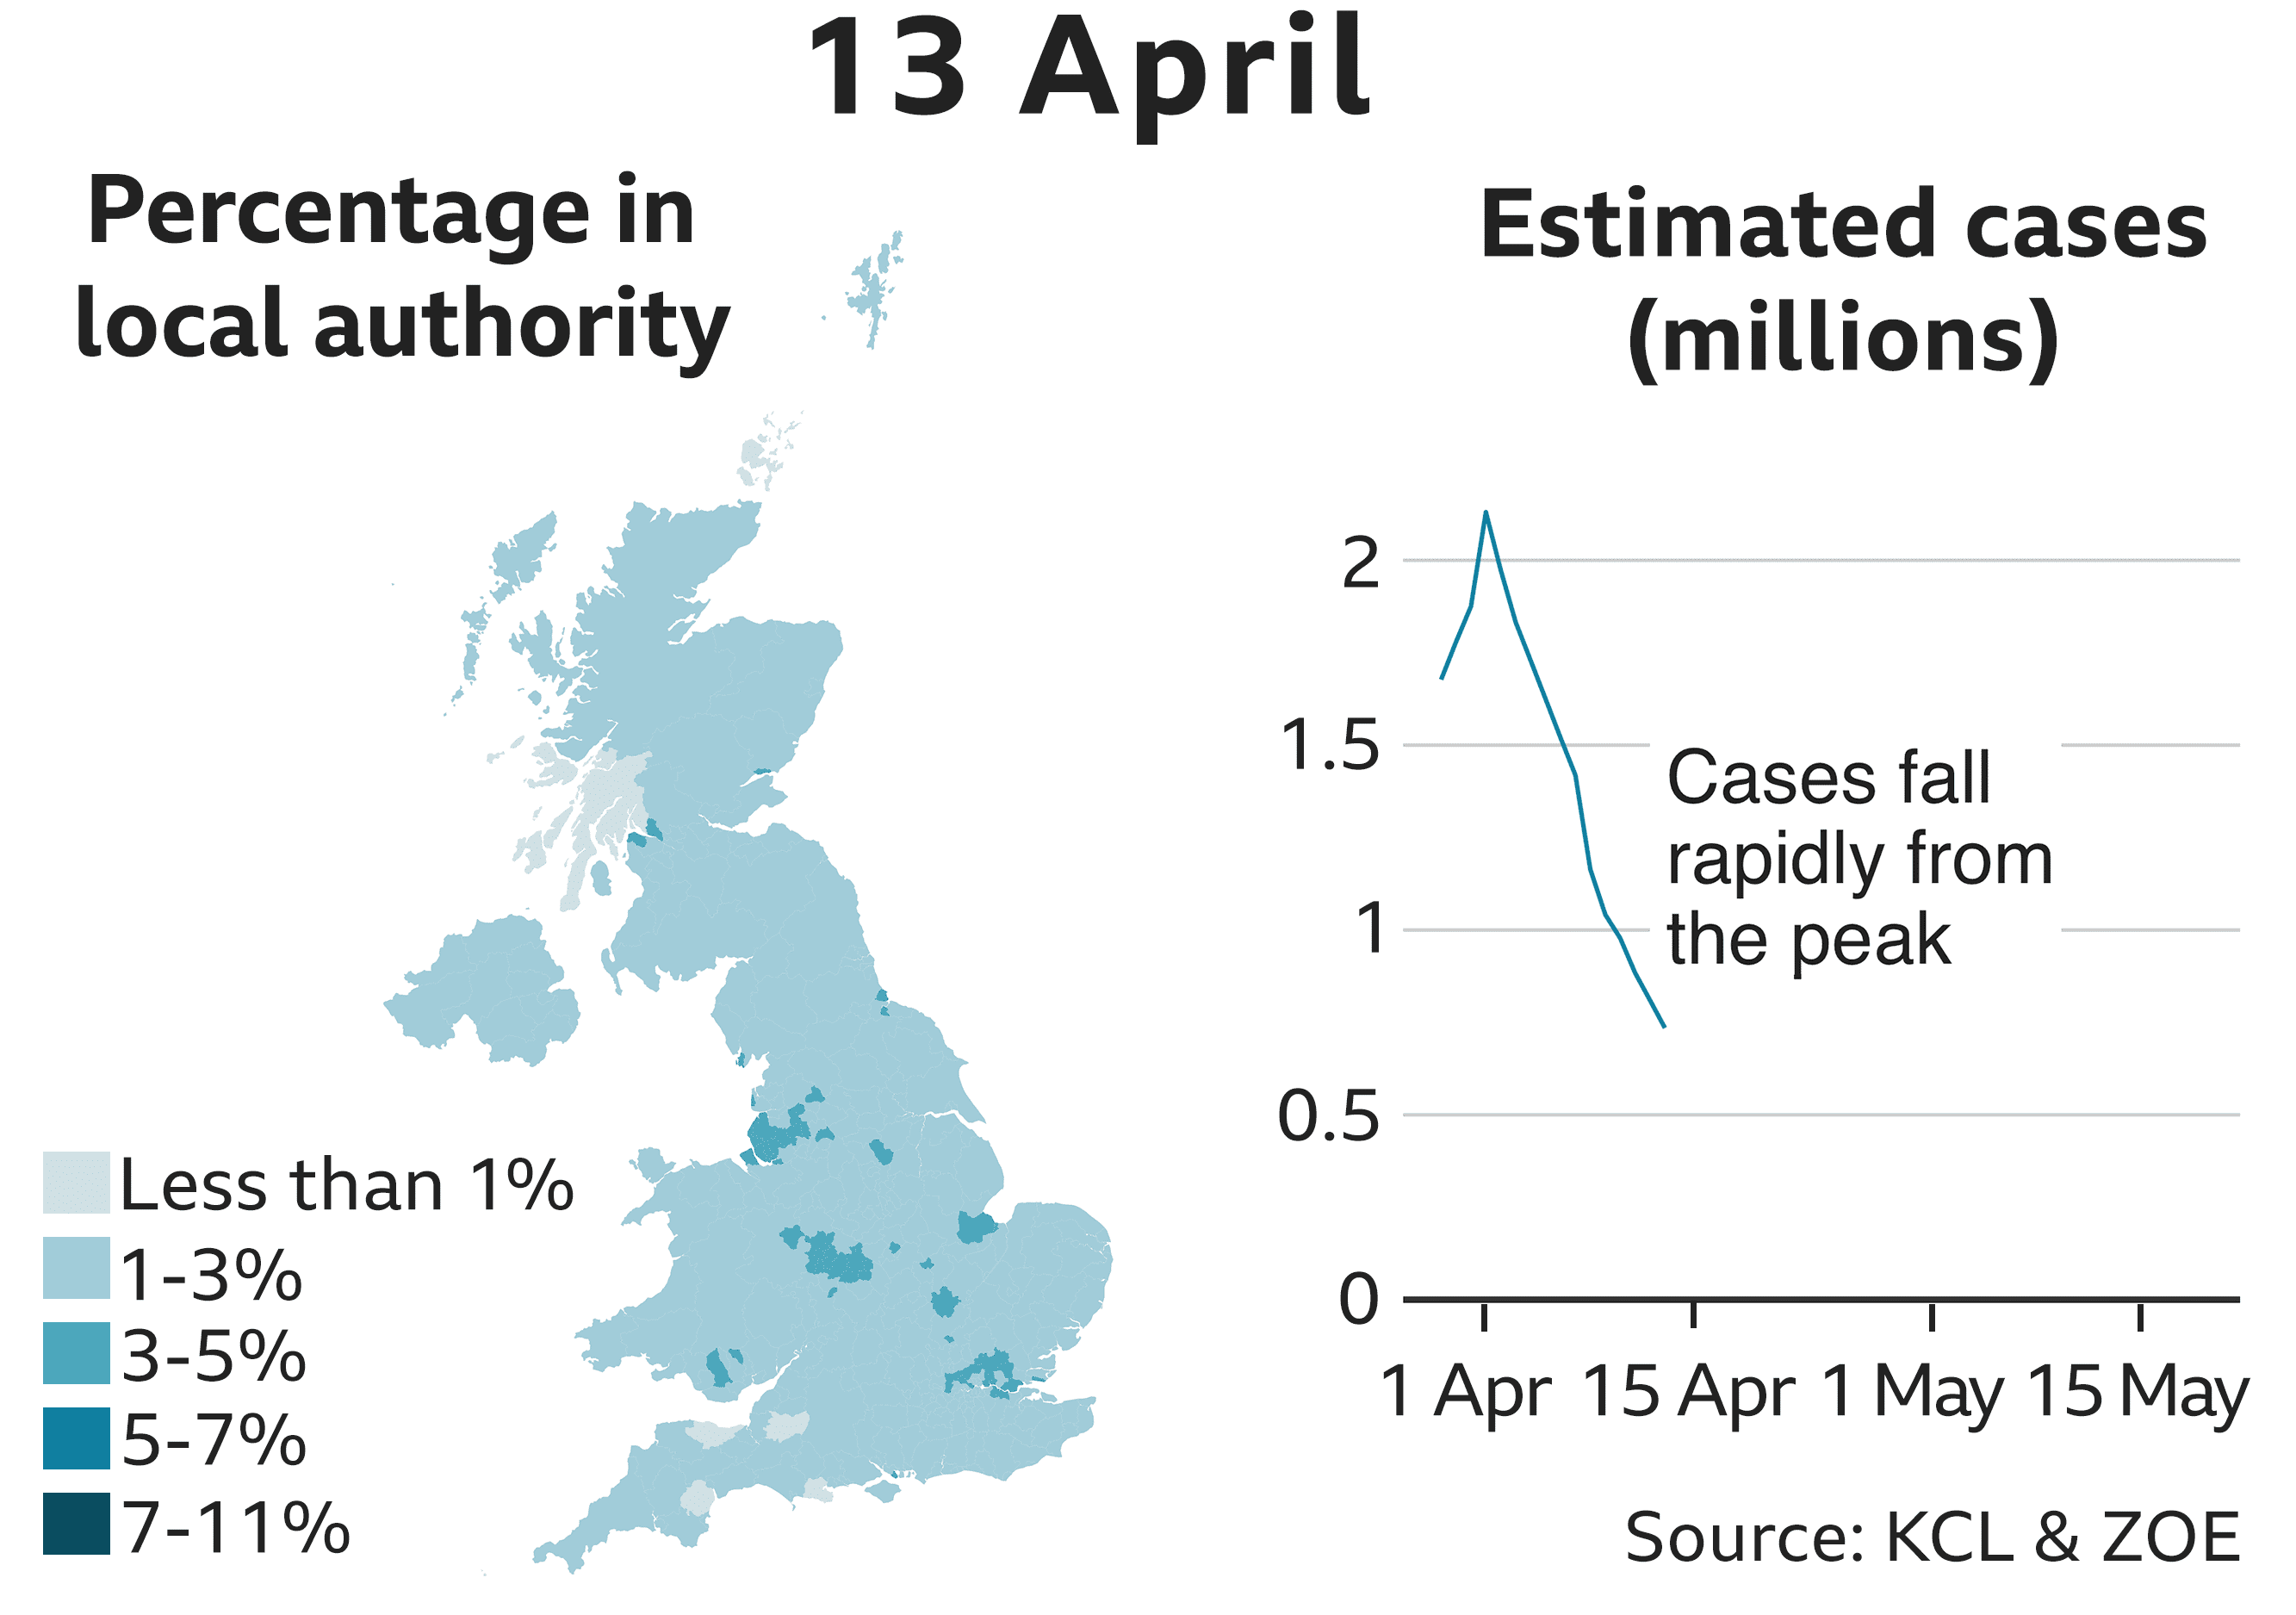 13 Apr 734840 estimated cases. Chart shows estimated cases at around 800,000, but the rate of decline is slowing down